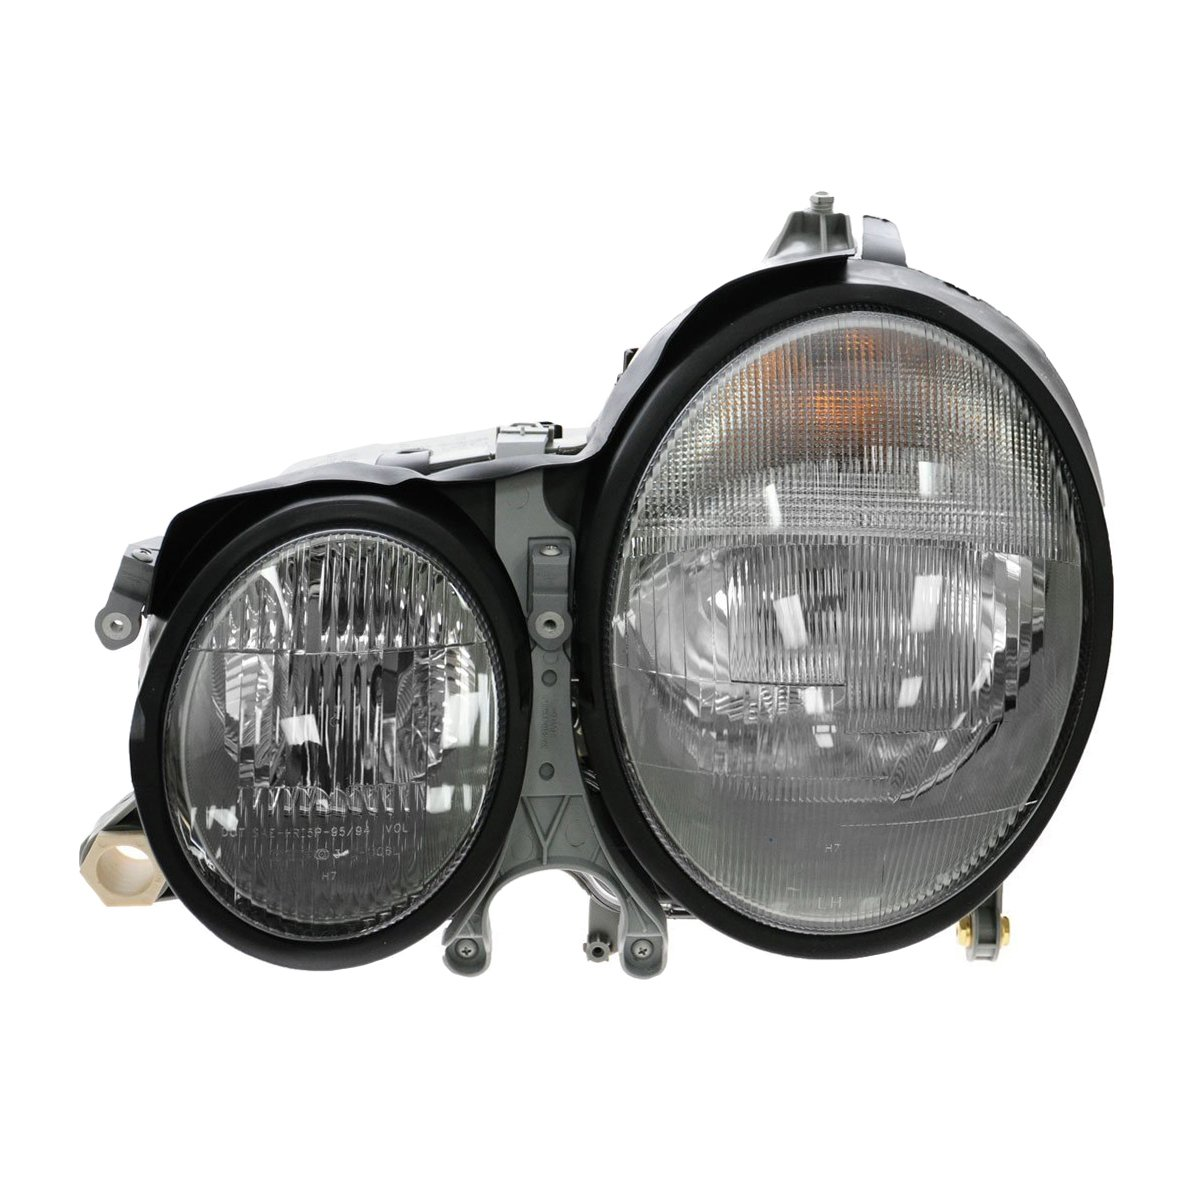 Amazon.com: Headlights Depot Replacement for Mercedes-Benz E320 Headlight  OE Style Replacement Headlight Left Driver Side: Automotive